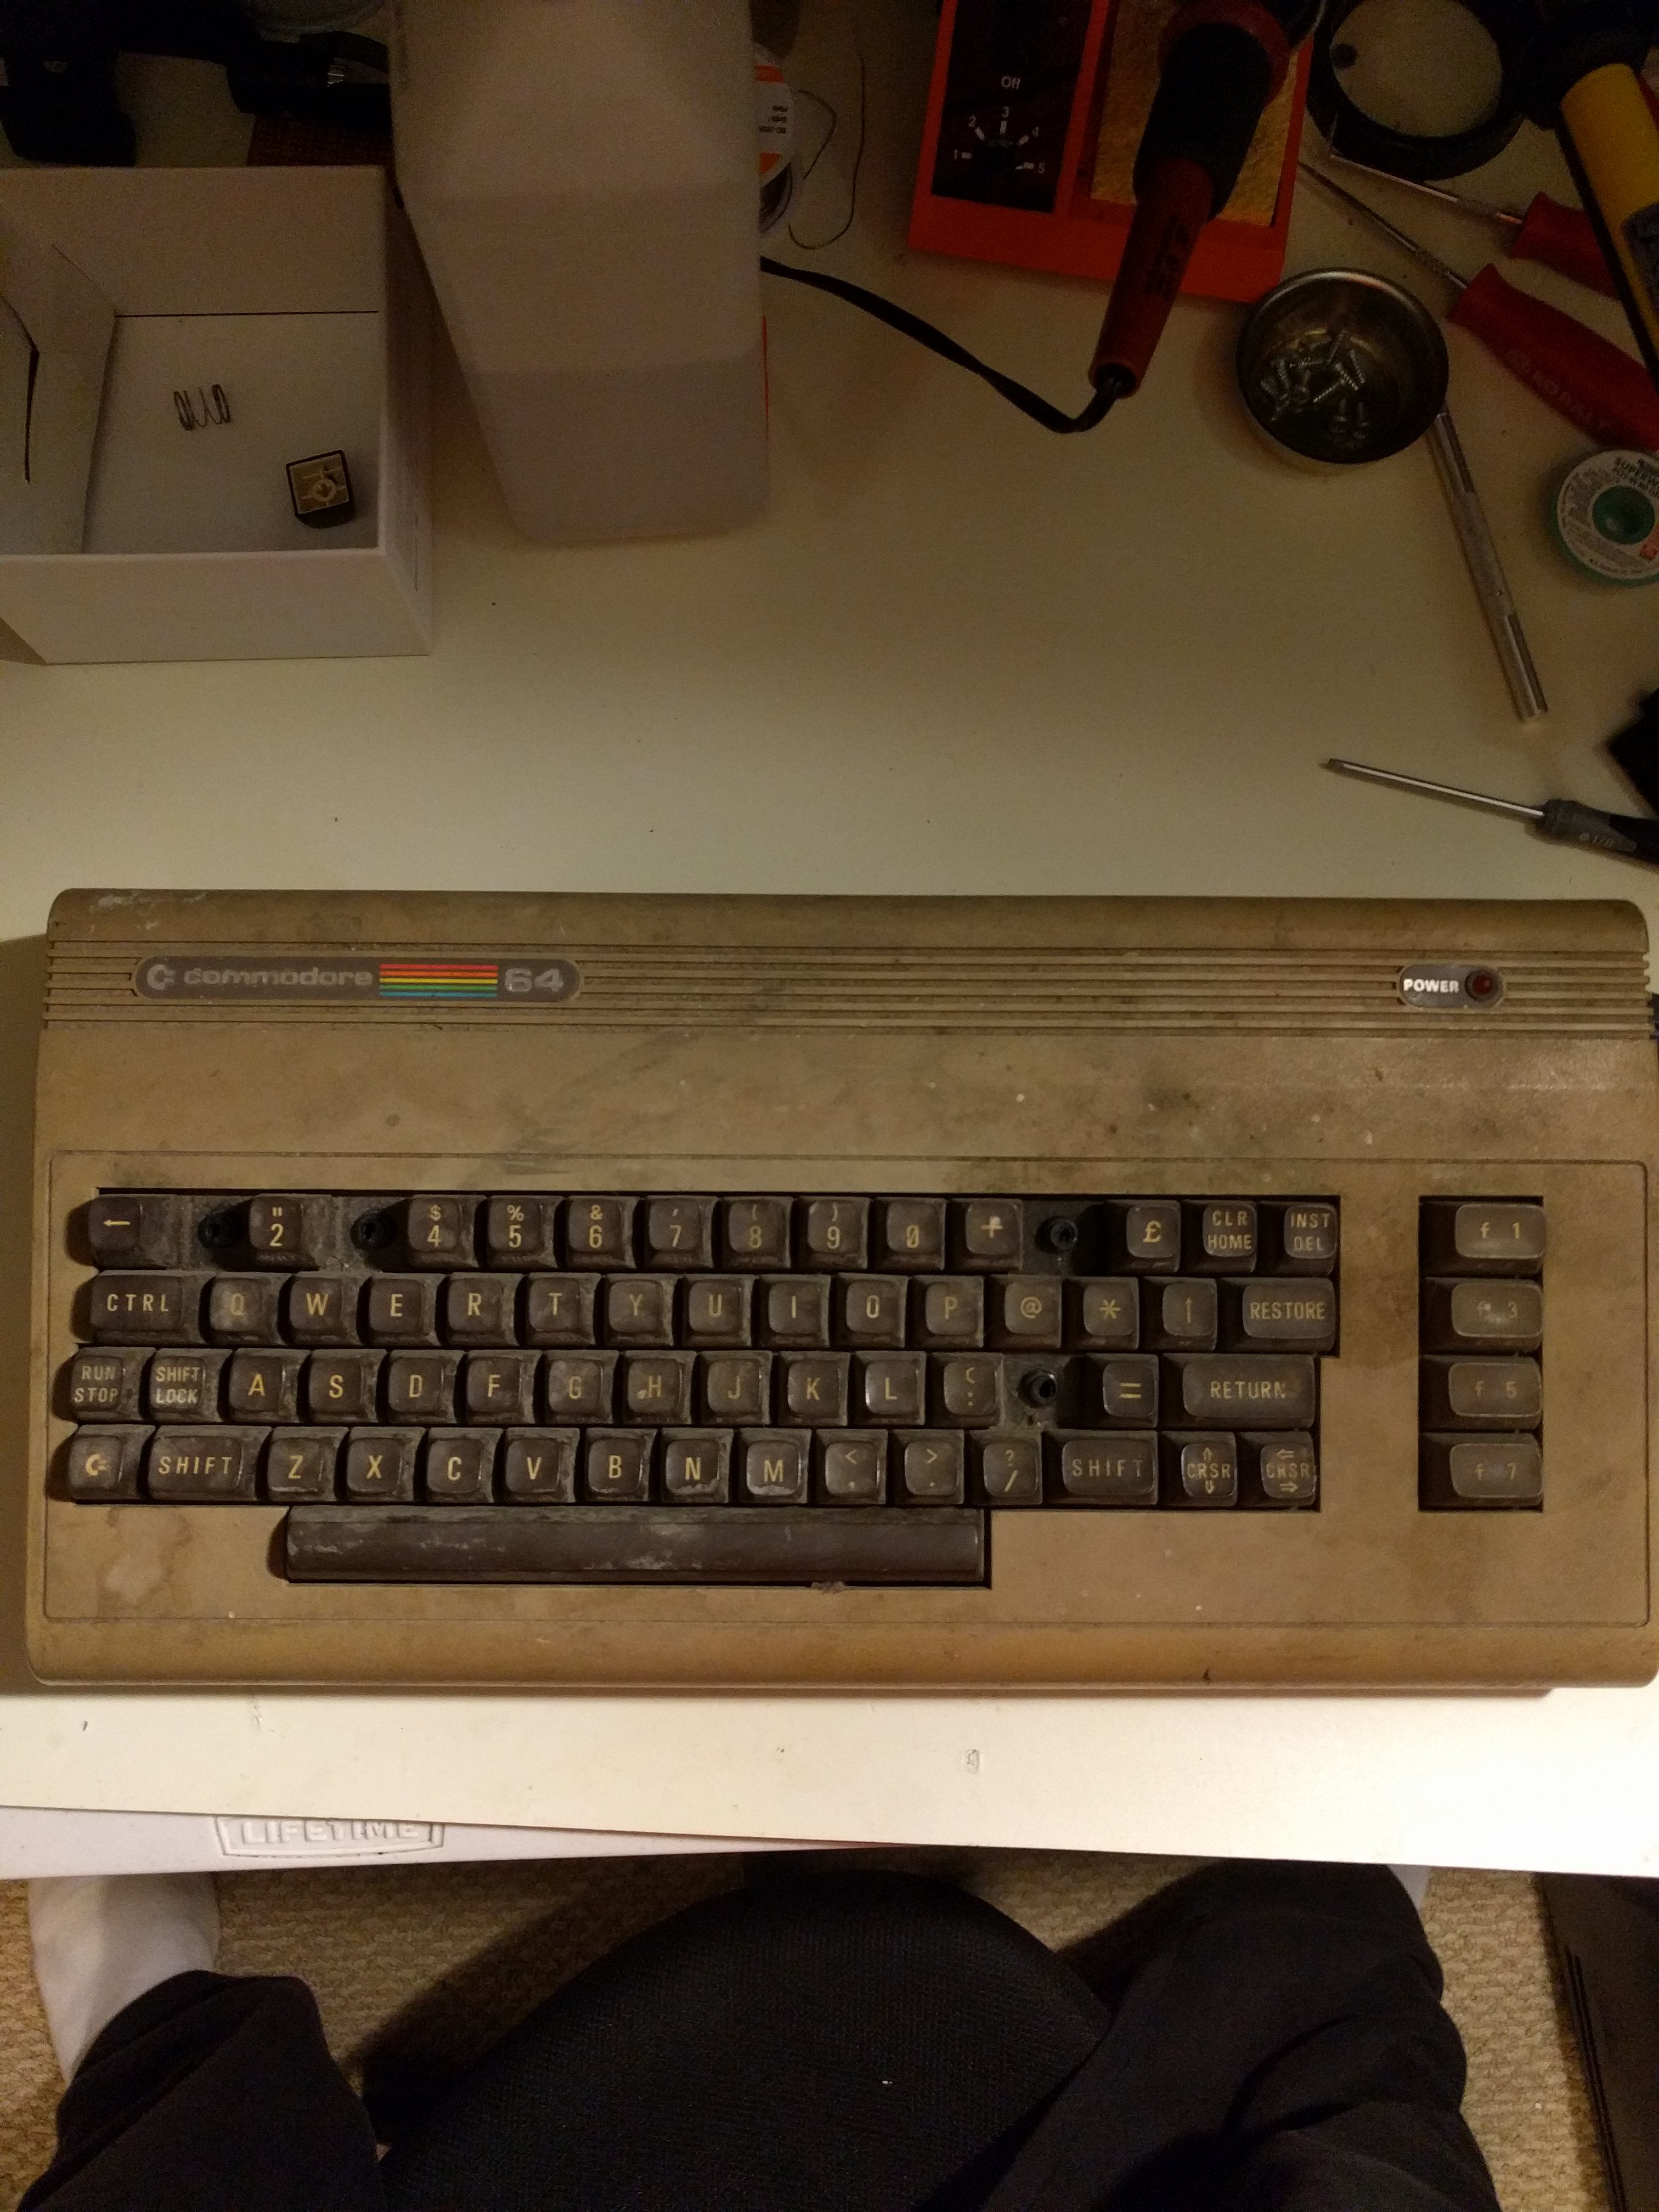 C64 in bad shape